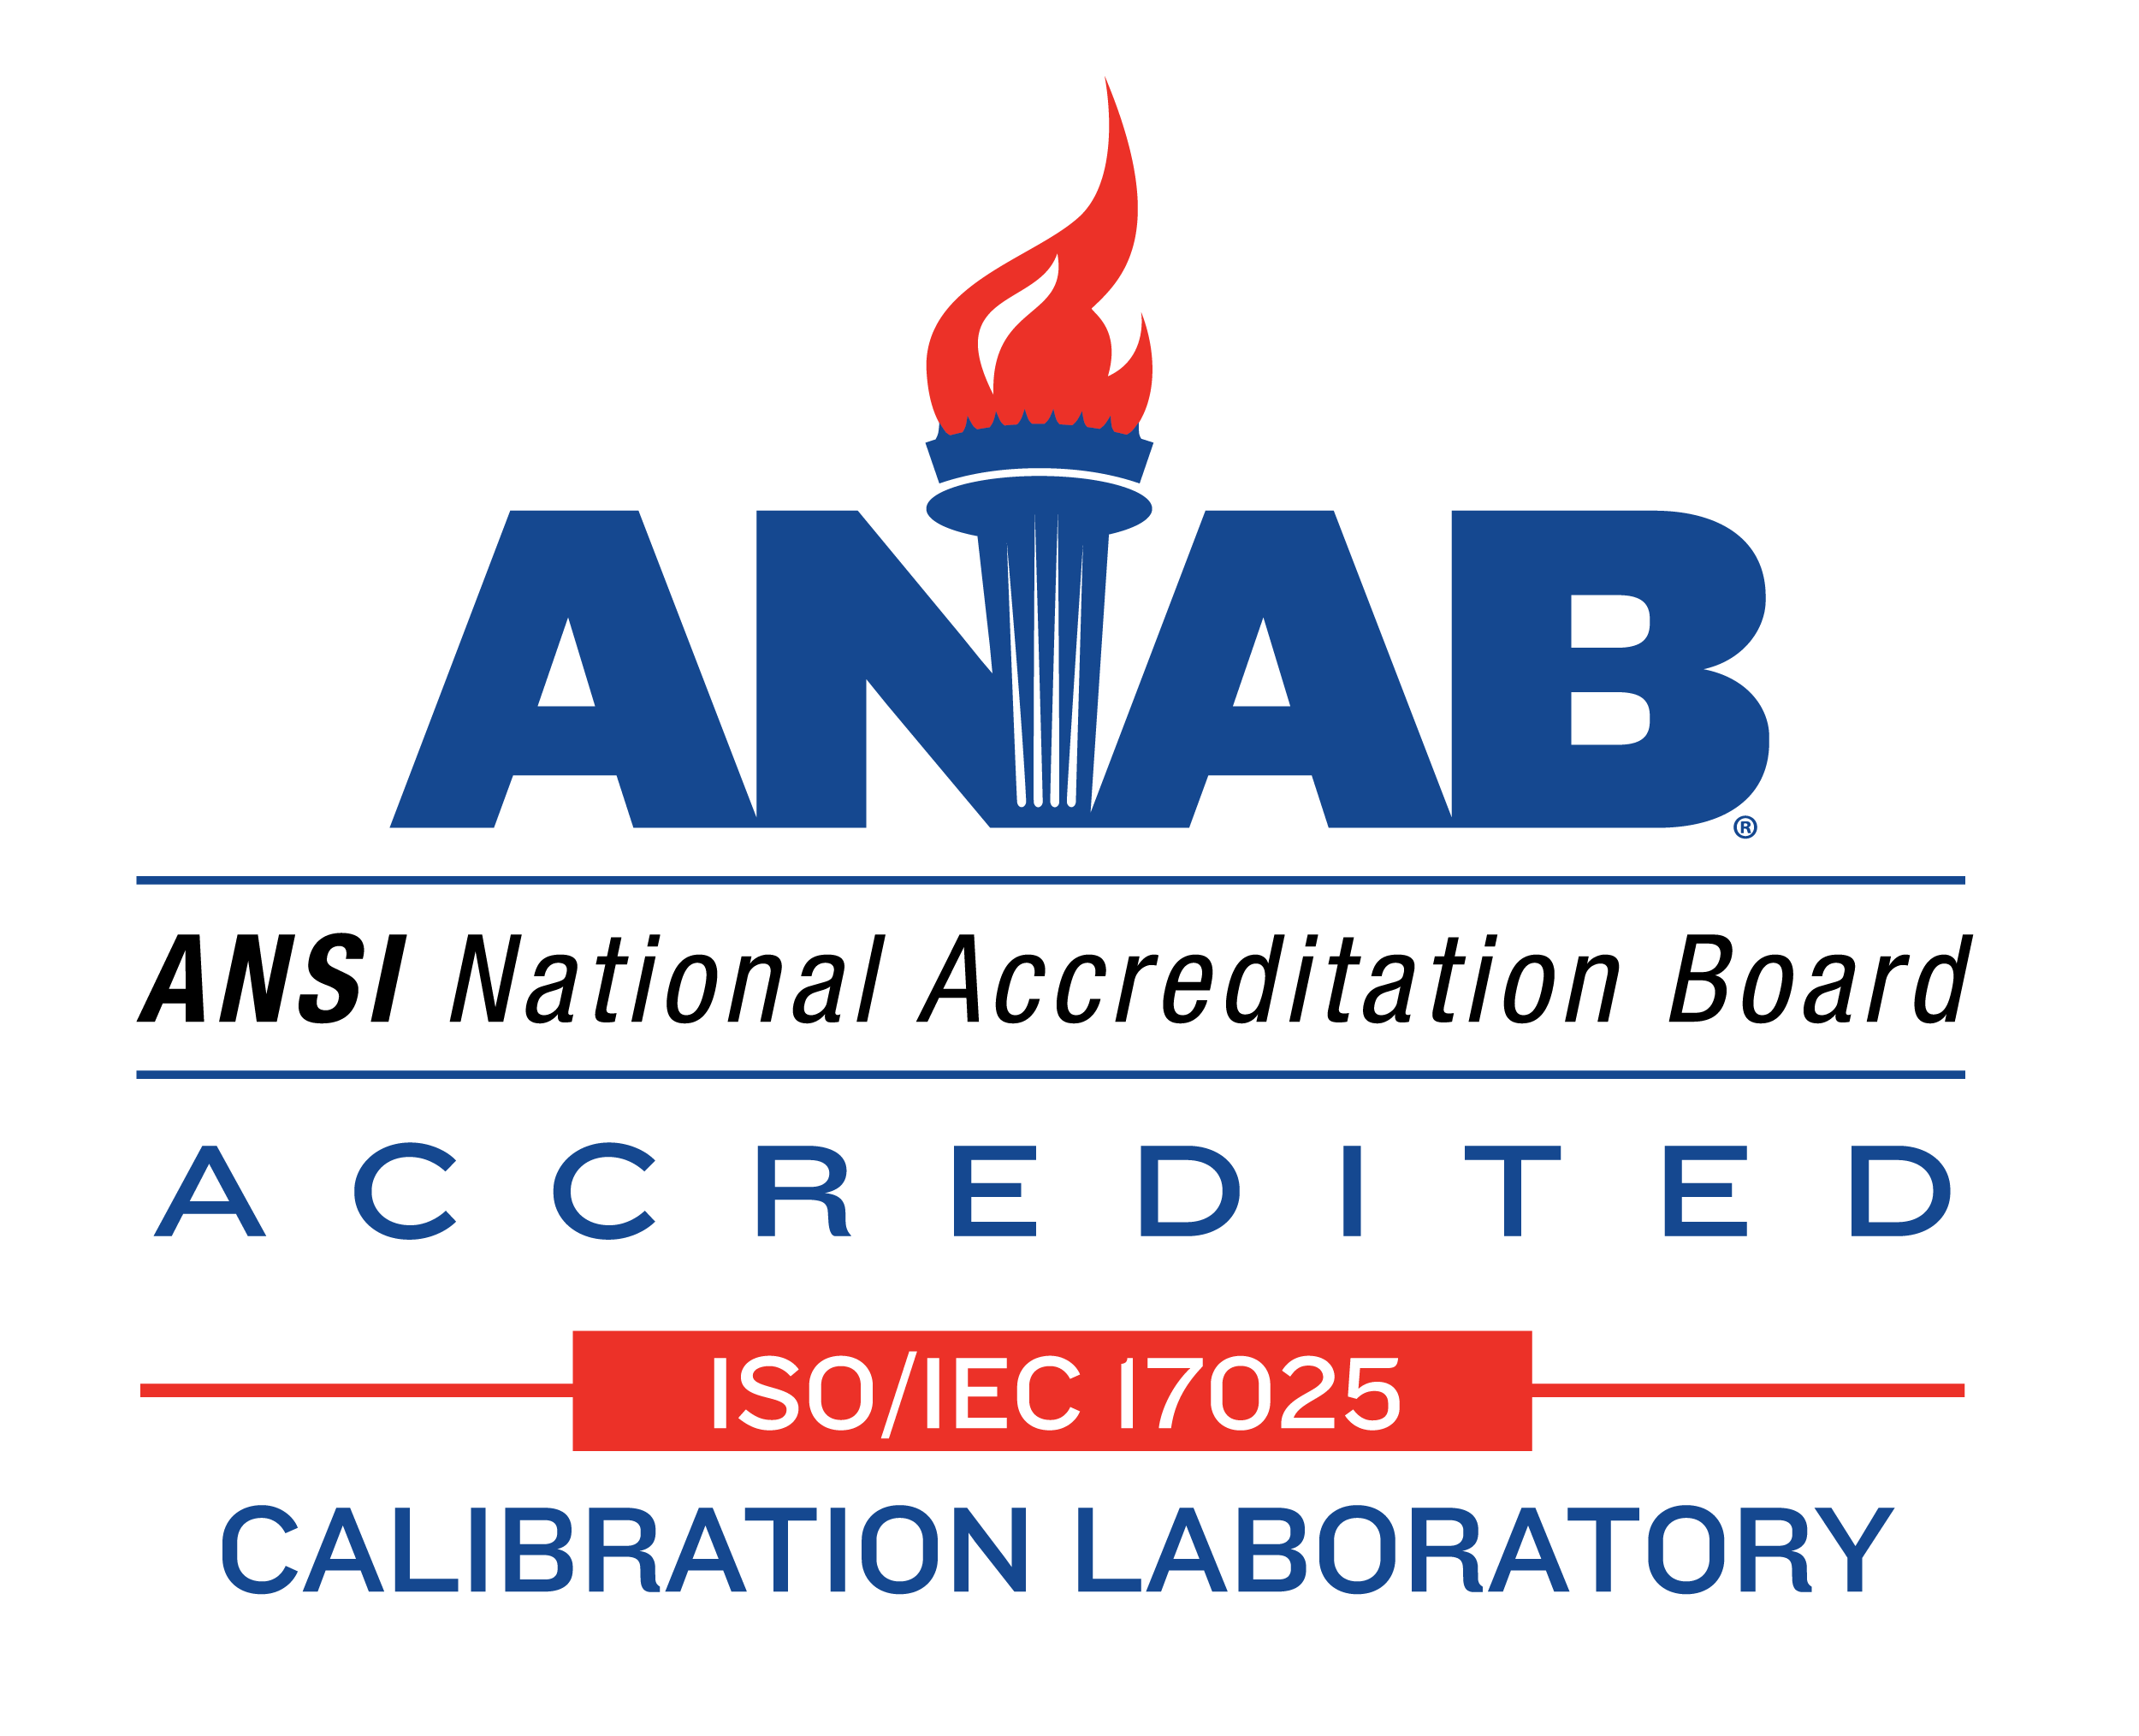 ISO 17025 ACCREDITED ALLIANCE CALIBRATION